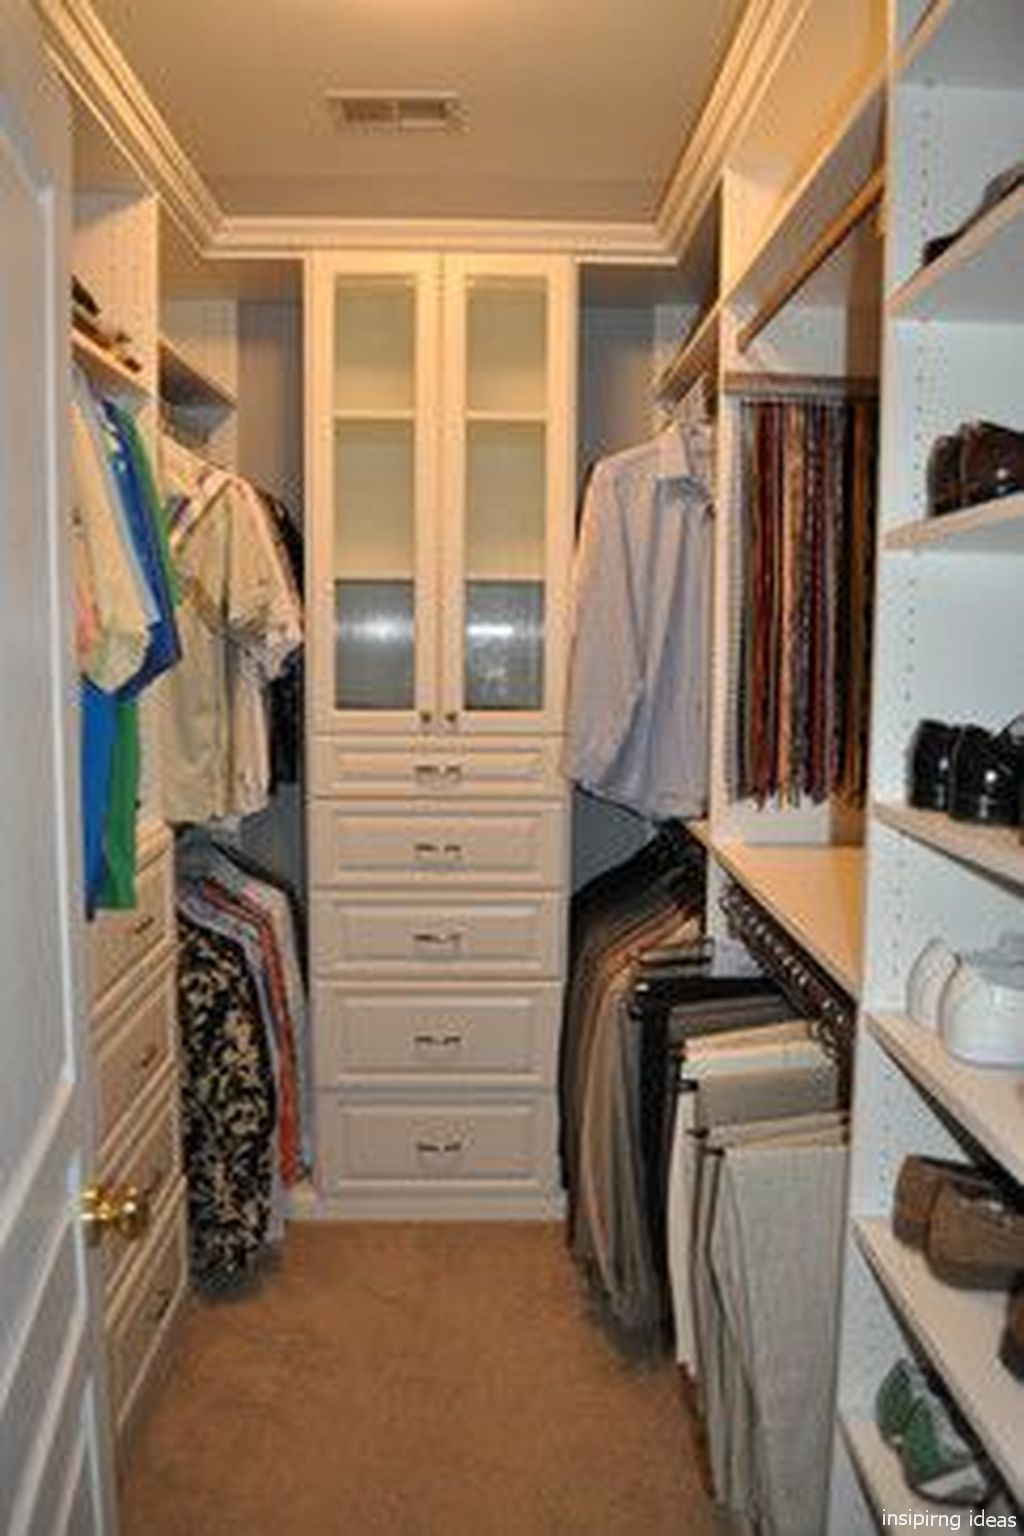 Cool 135 Genius Small Closet Ideas And Makeover Https Roomaholic Com 1592 135 Genius Small Closet Ideas A Closet Remodel Closet Layout Master Bedroom Closet